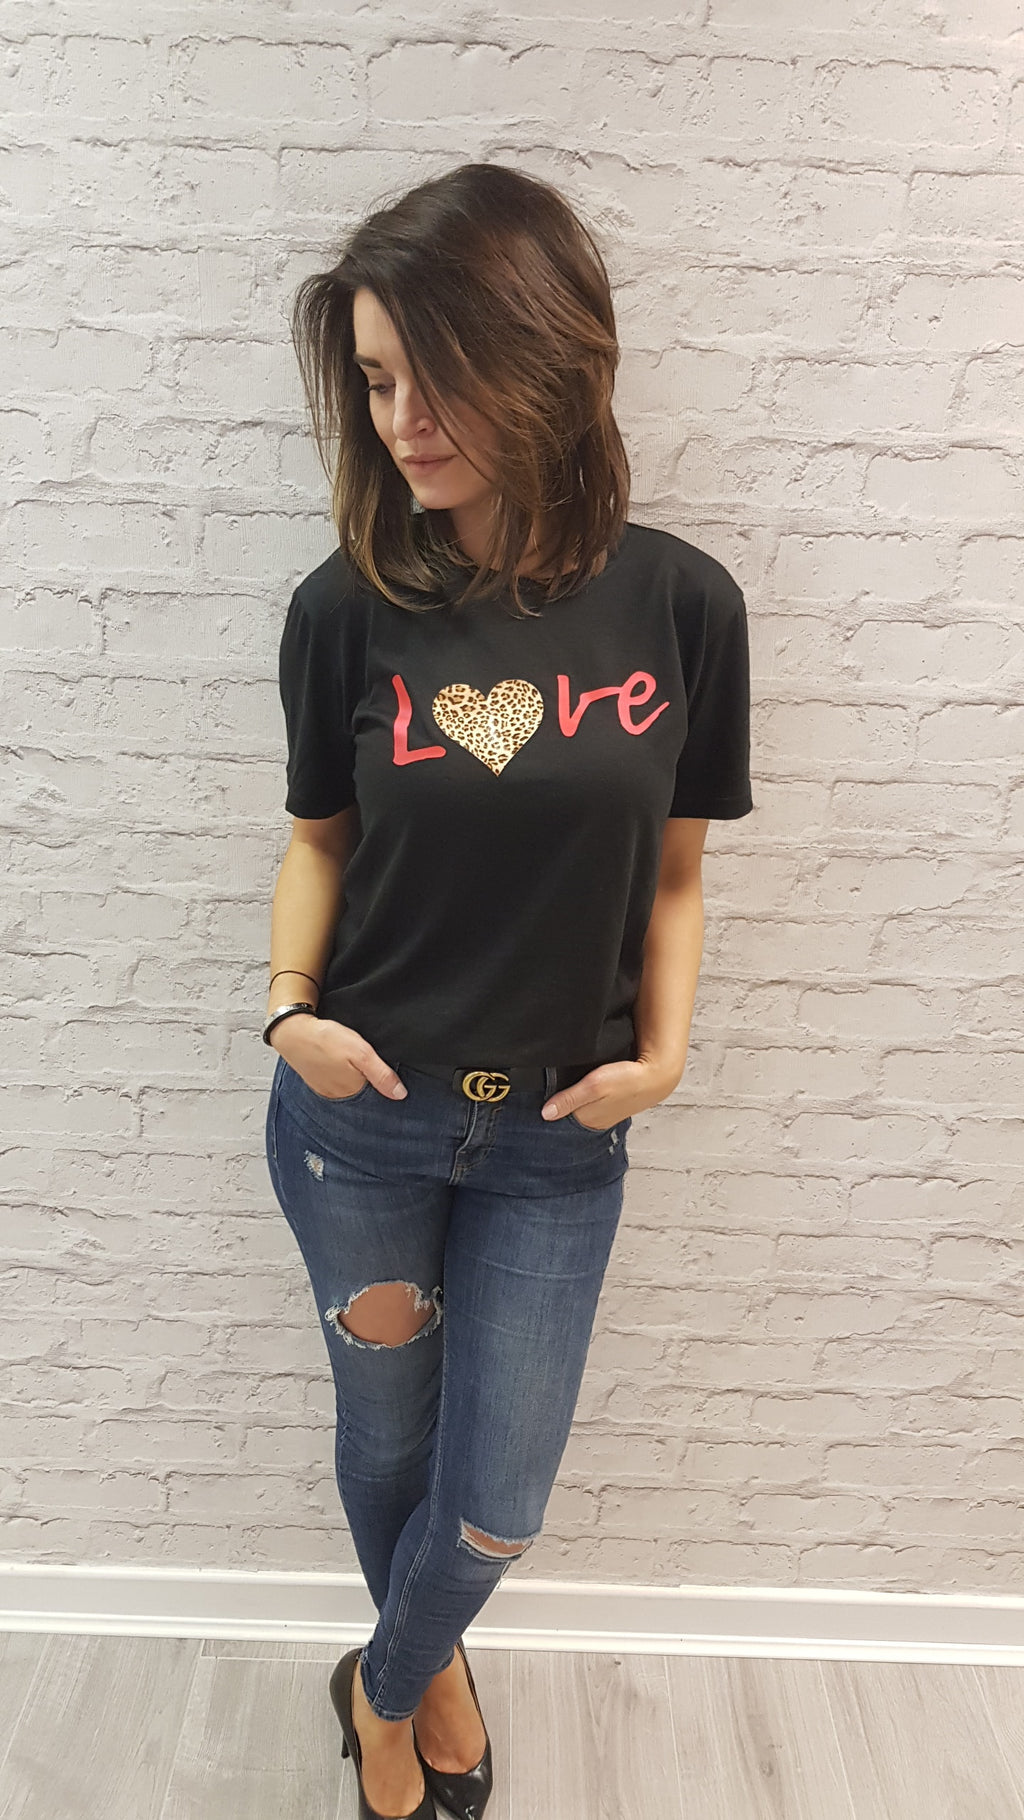 Slogan Tee Love (for the British Heart Foundation)